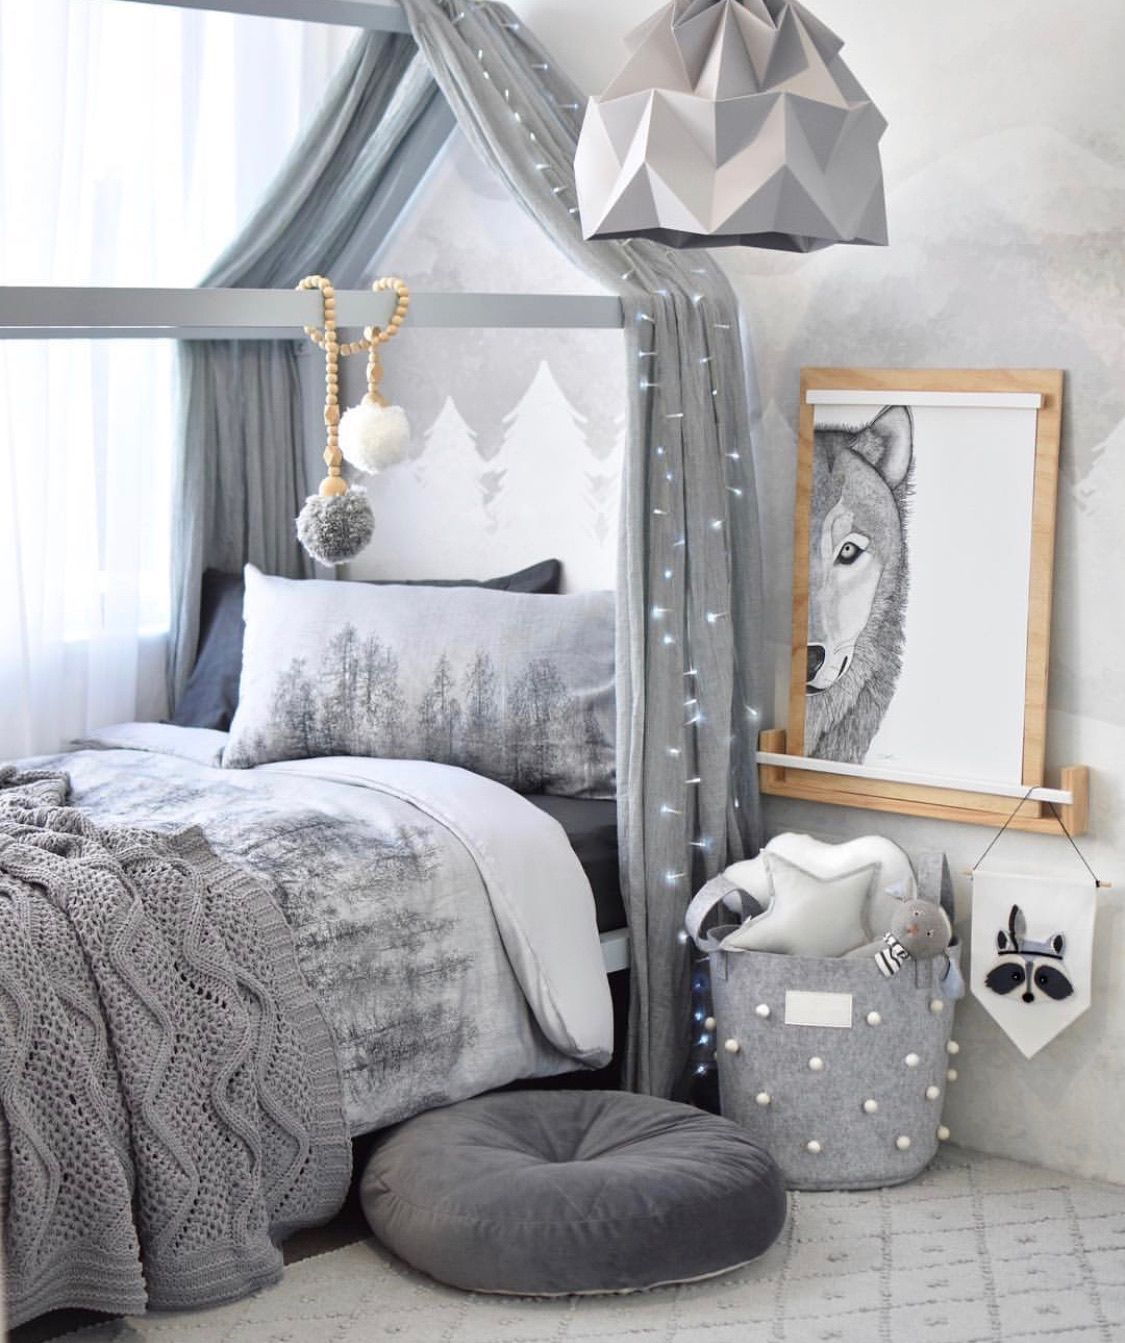 2020 Best Diy Toddler Bed Ideas In 2020 With Images Toddler Rooms Boys Bedroom Grey Baby Room Decor Toddler bedroom ideas grey